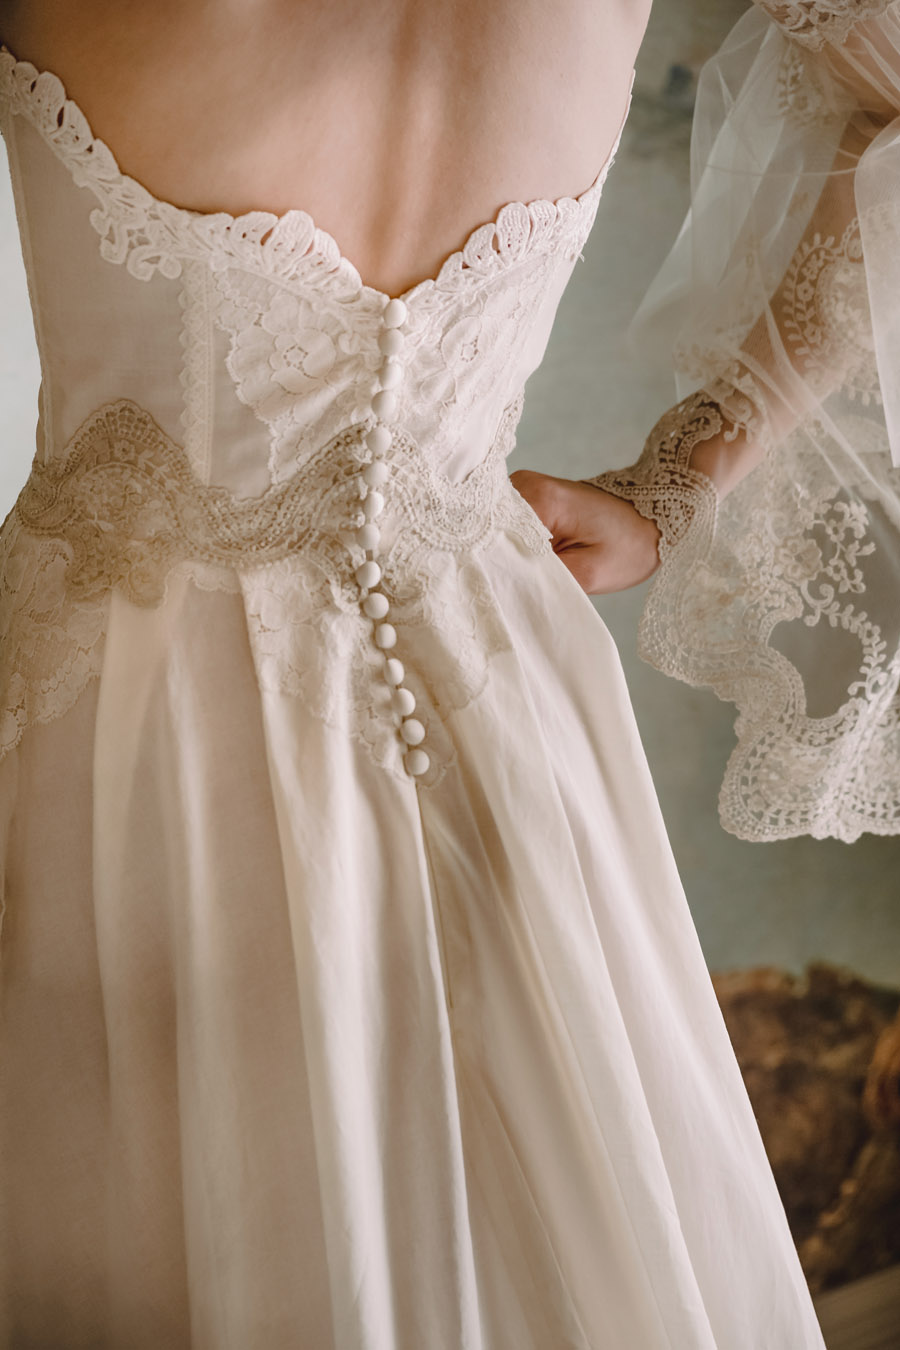 Claire Pettibone 2020 wedding dress ideas (10)